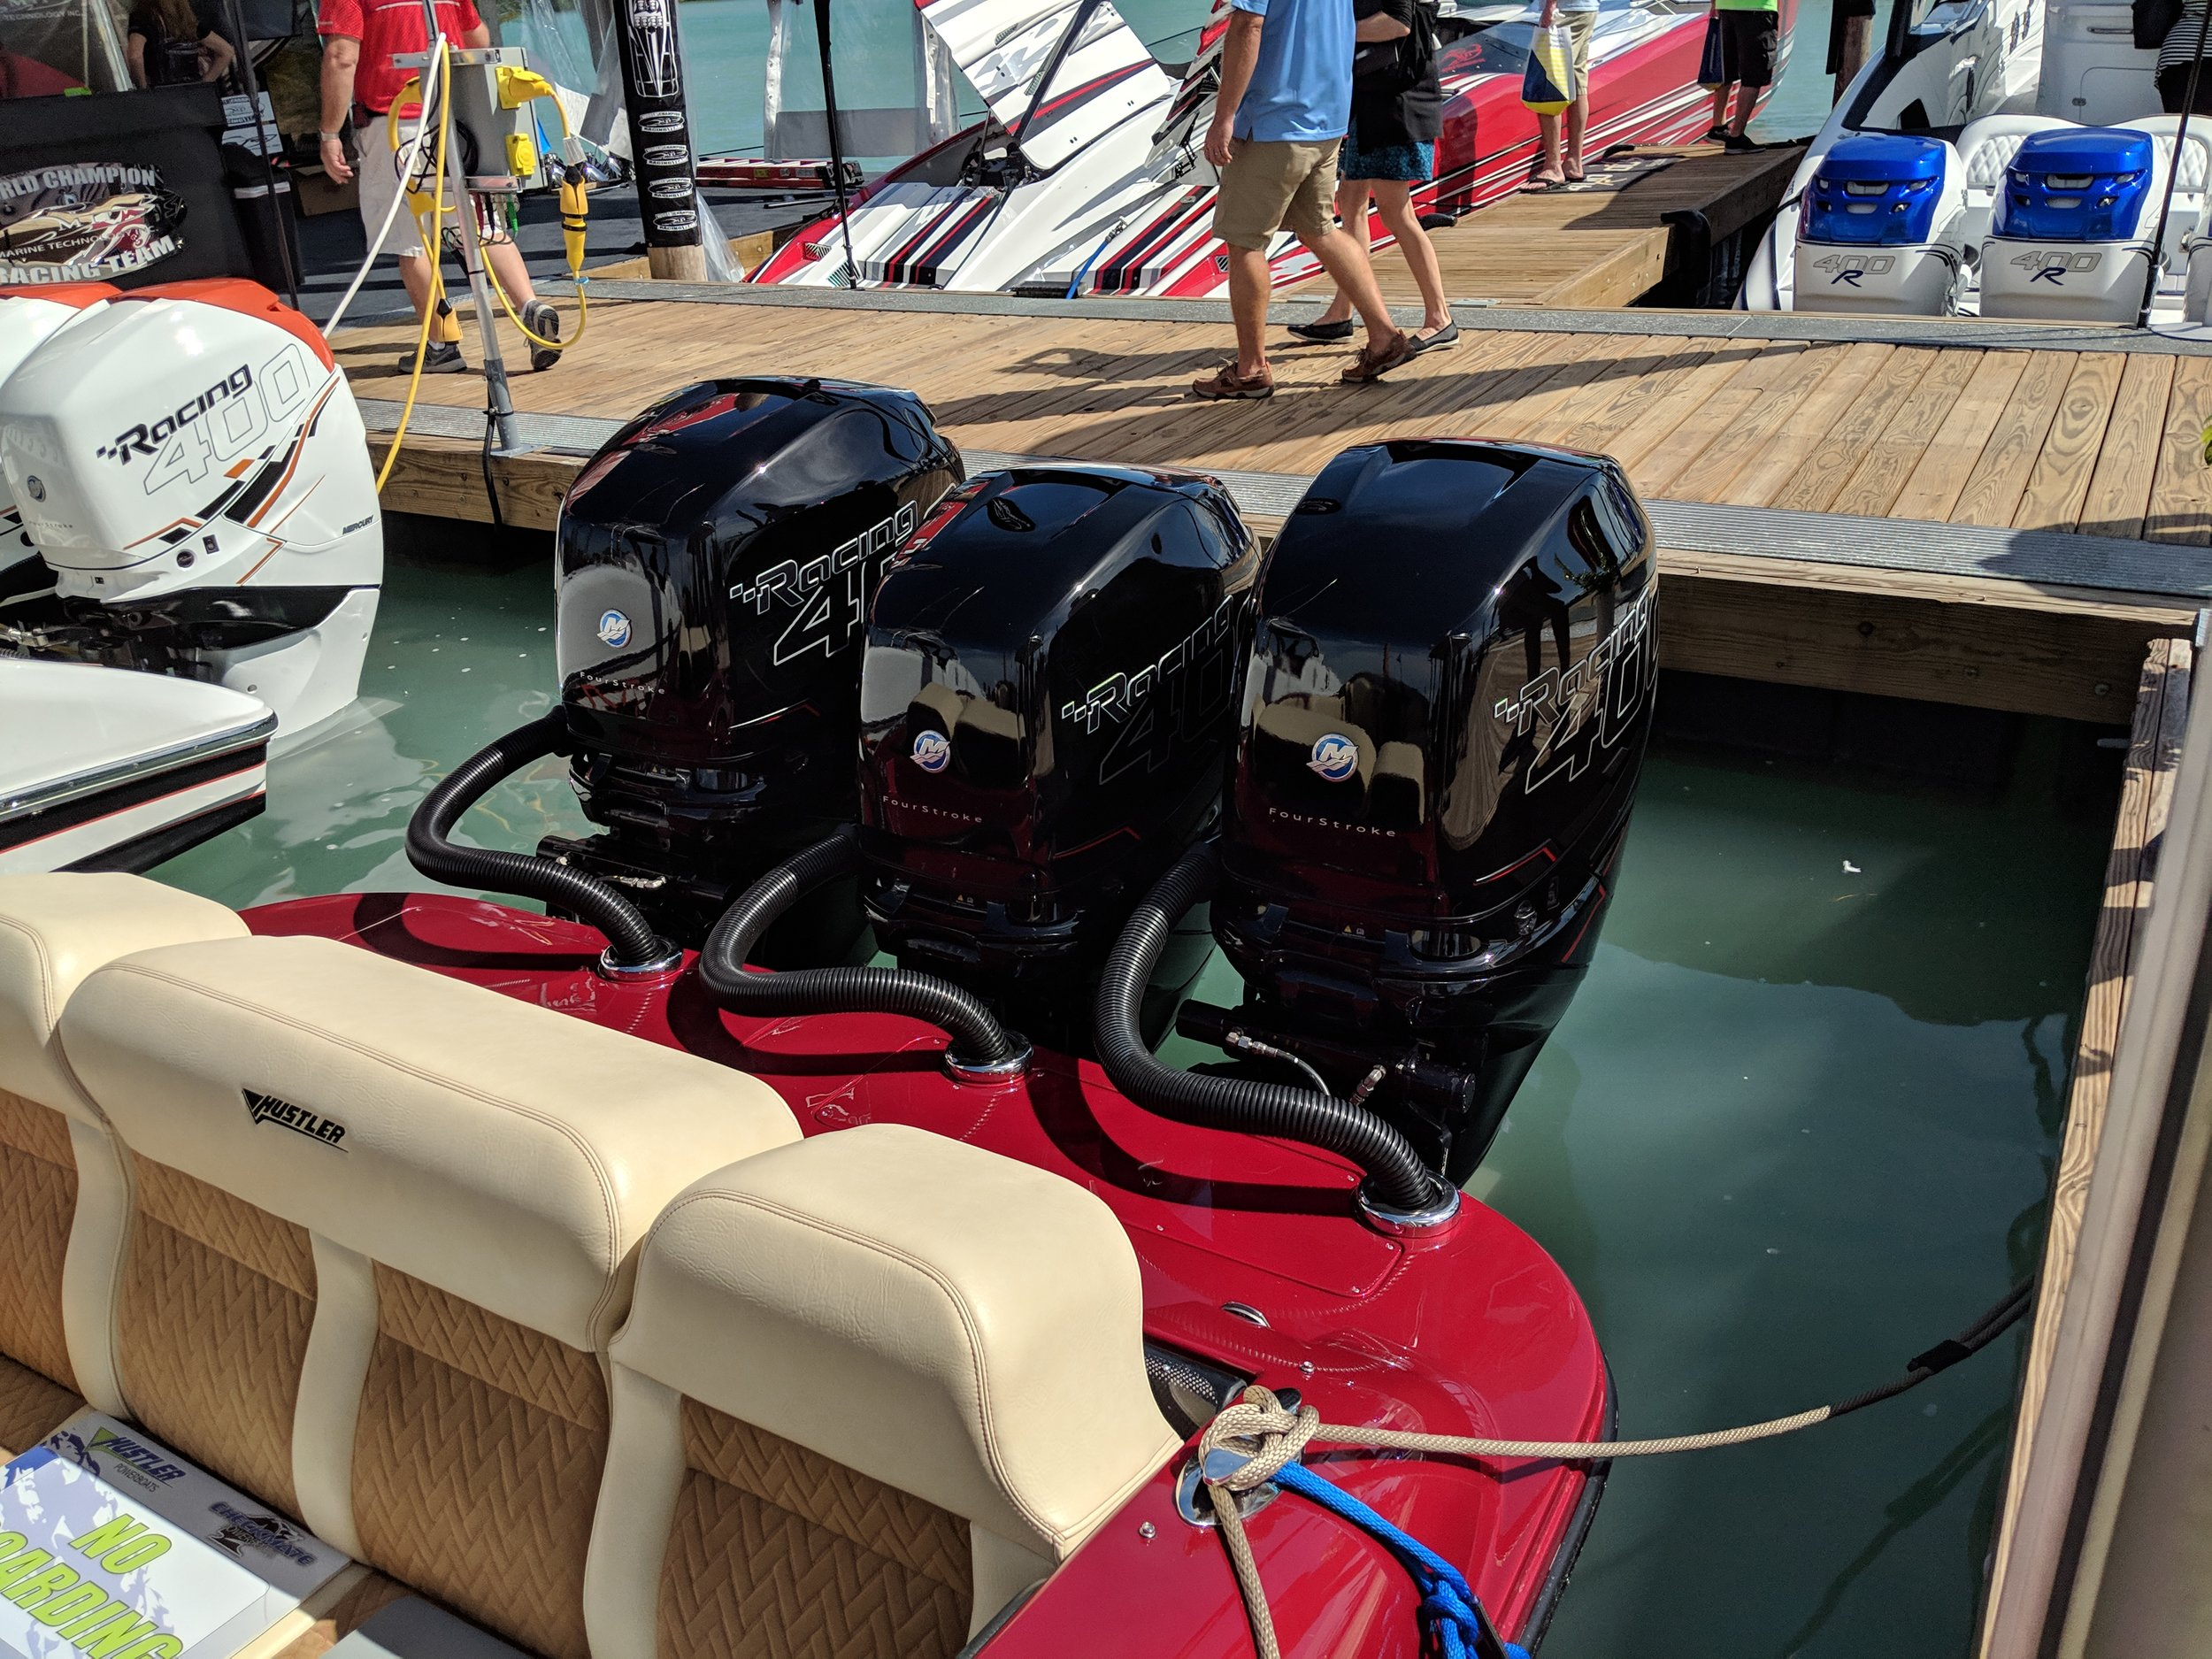 For sport boats like the Hustler Shotgun, it is hard to beat triple 400Rs. The replacement of the popular Verado inline 6, will have to be really good, and the V8 platform looks promising.